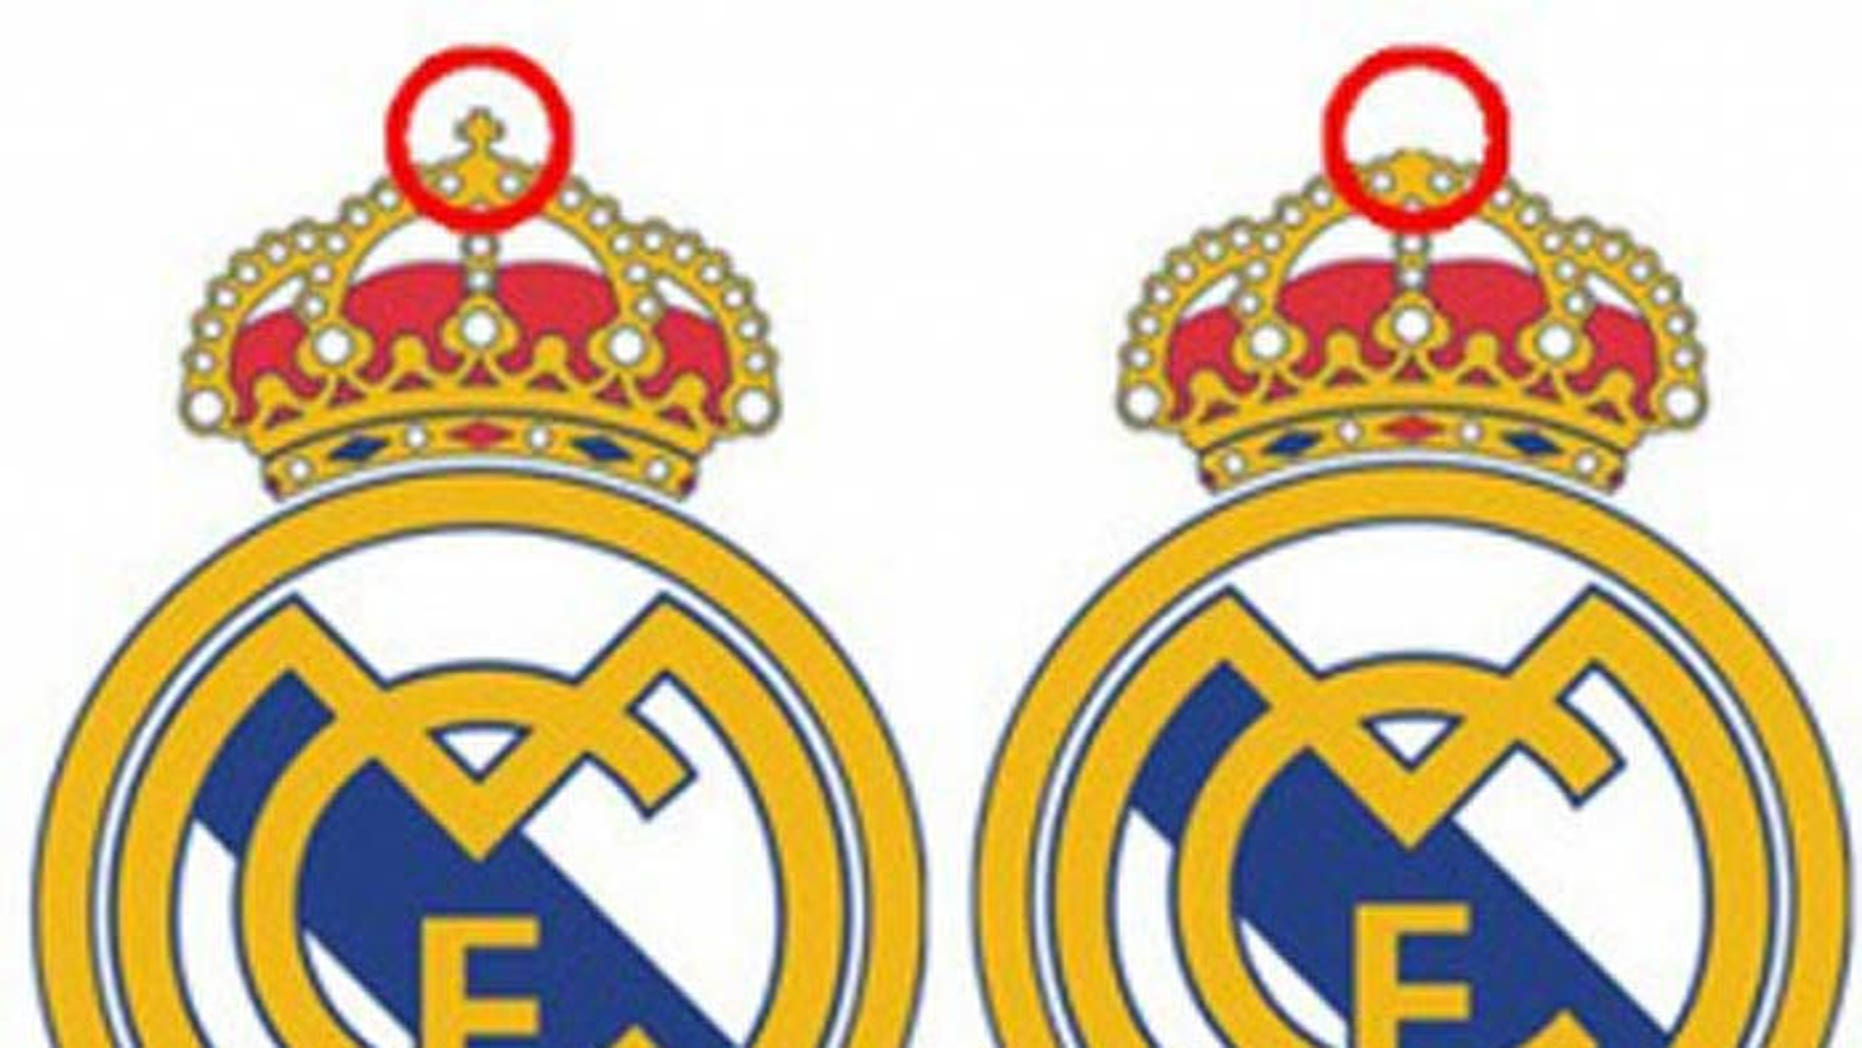 Soccer Club Real Madrid Removes Cross From Logo To Appease Uae Bank